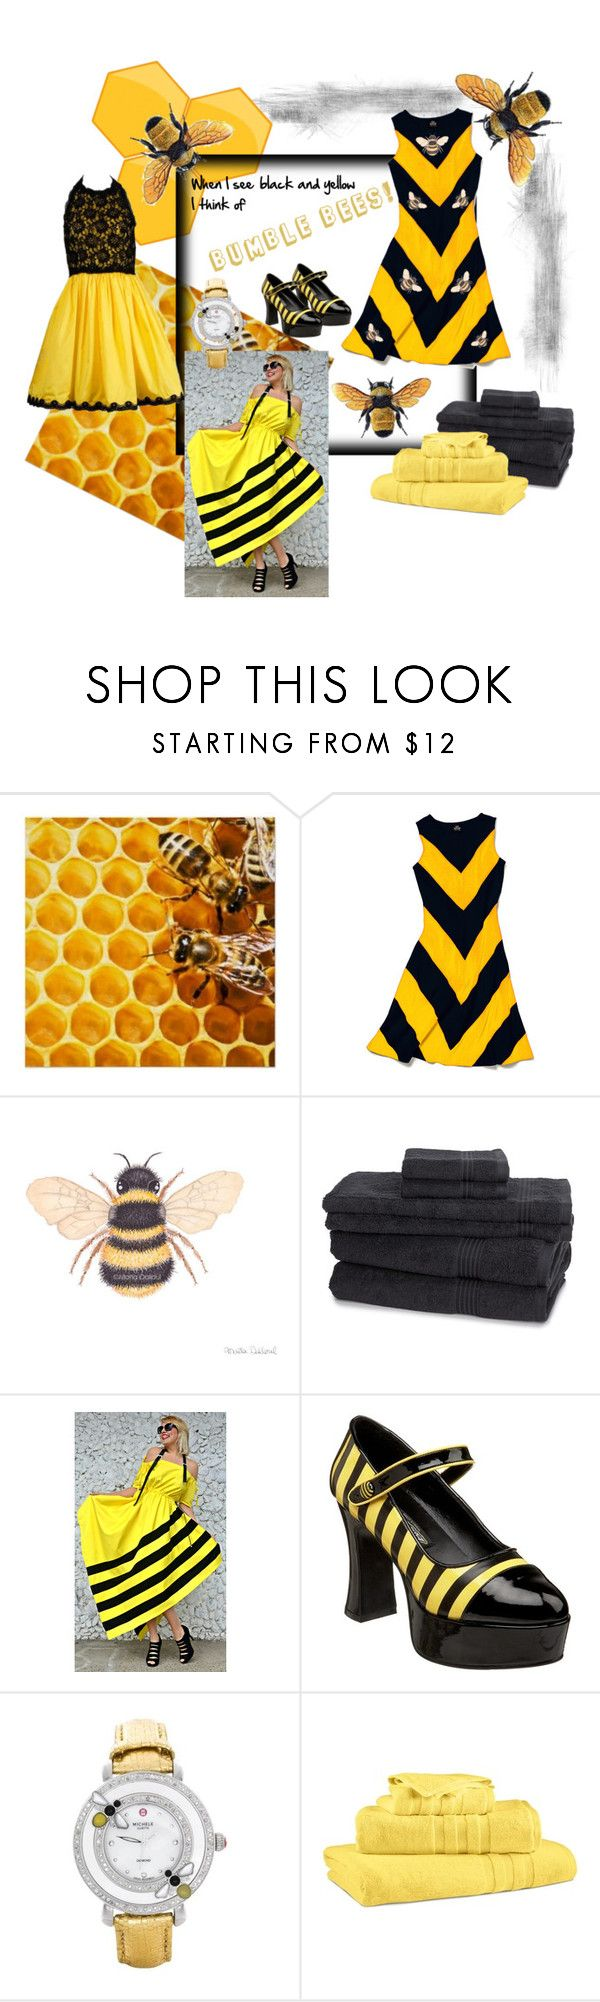 """Yellow=Bumble Bees!"" by october-cat-studios ❤ liked on Polyvore featuring Slater Zorn, Funtasma, Michele, Ralph Lauren and Bill Blass"